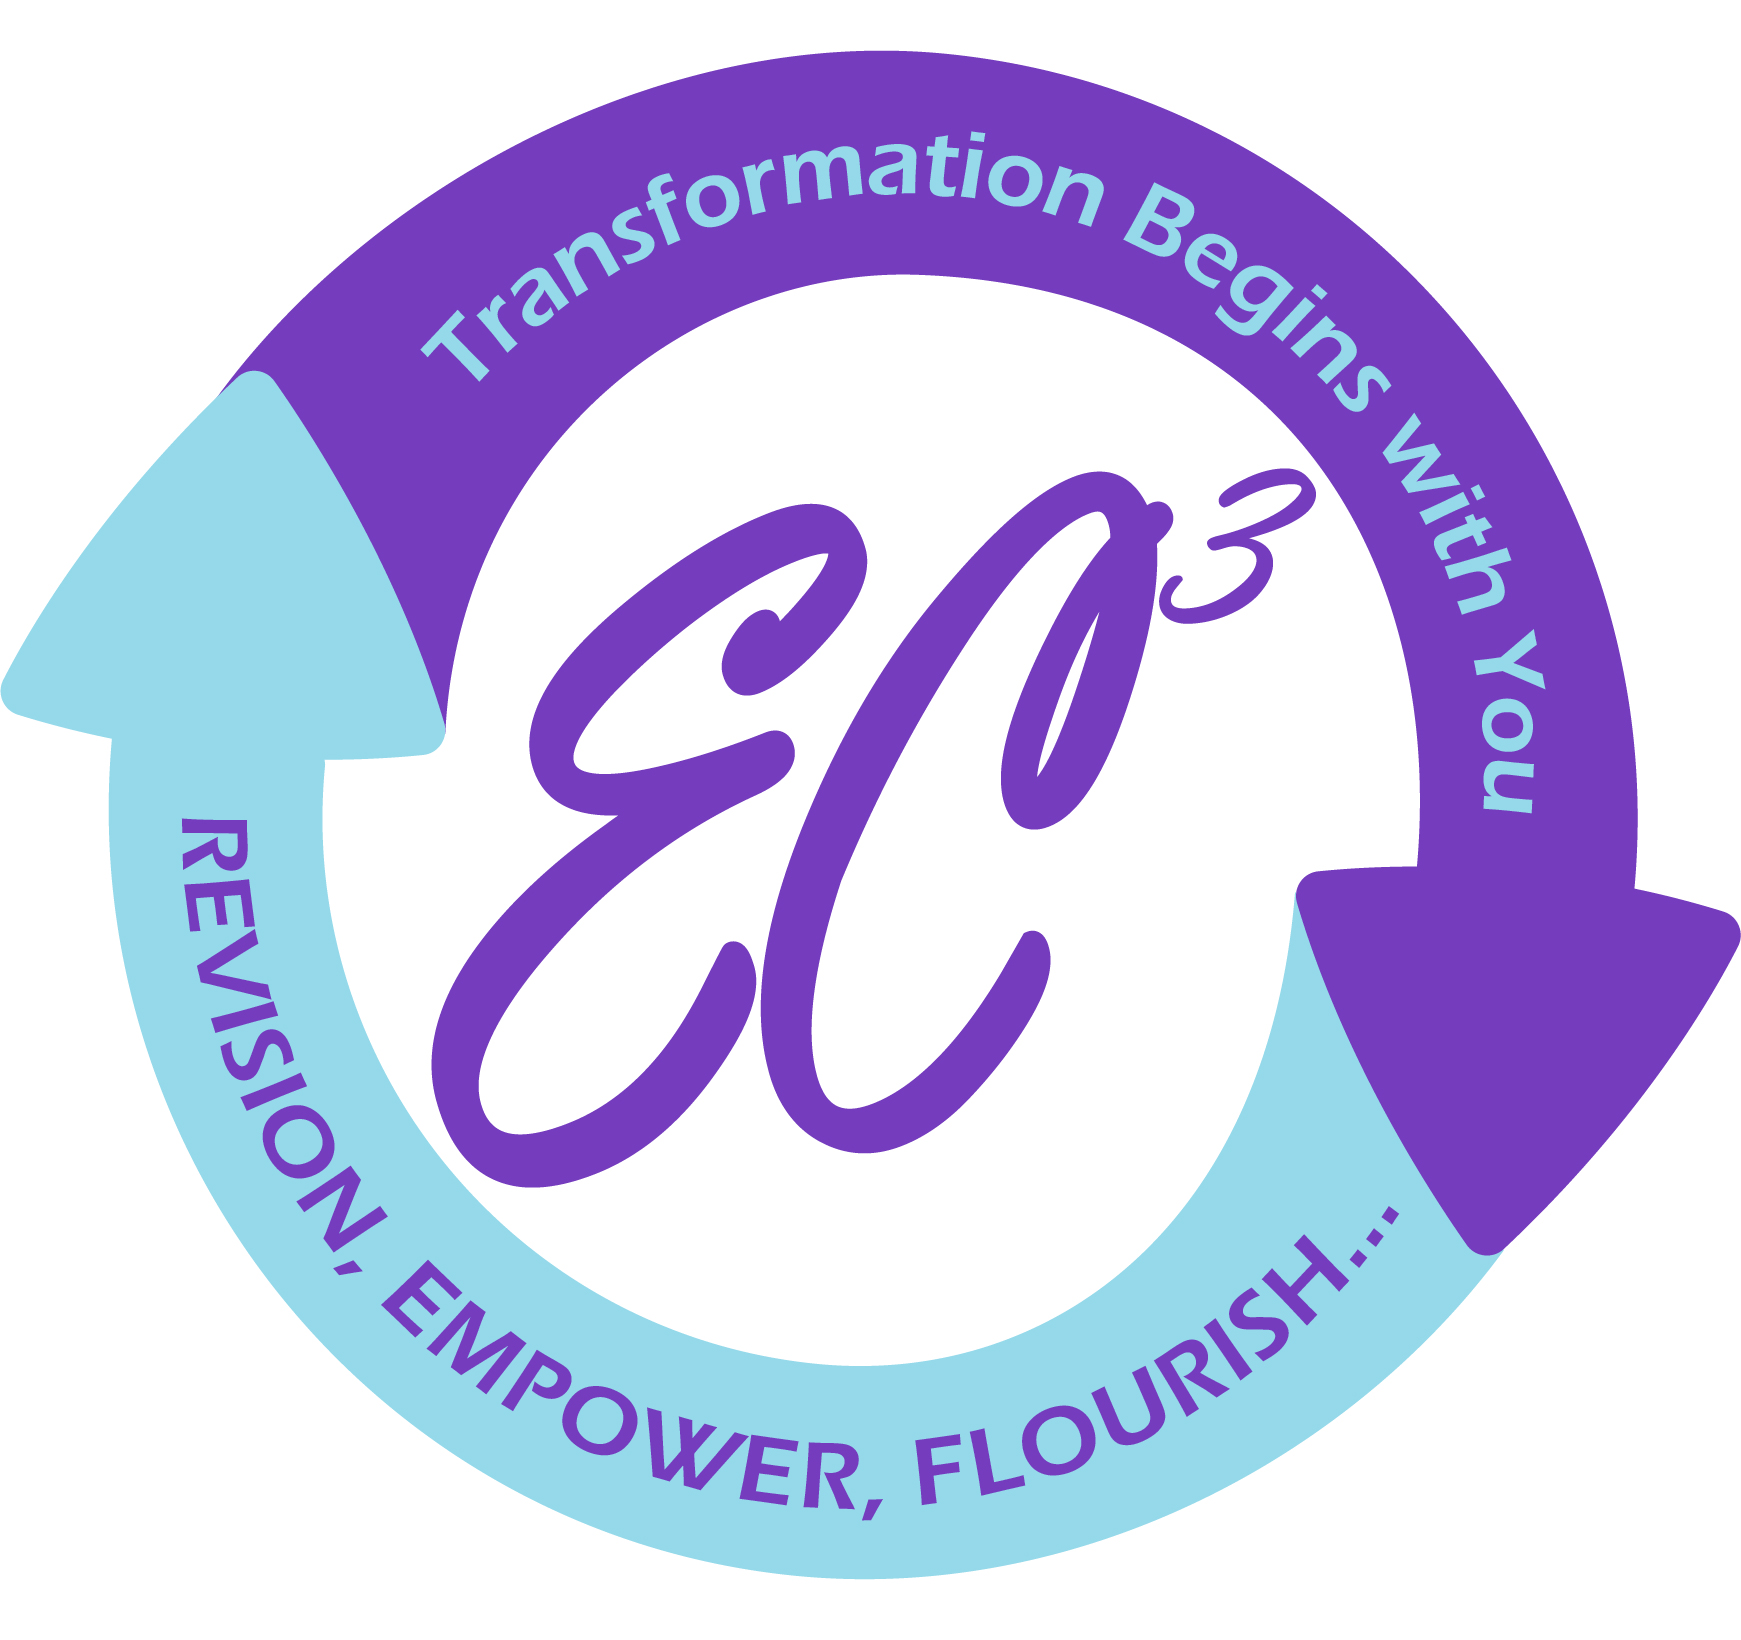 Sponsor Epiphany Change Coaching and Consulting, LLC